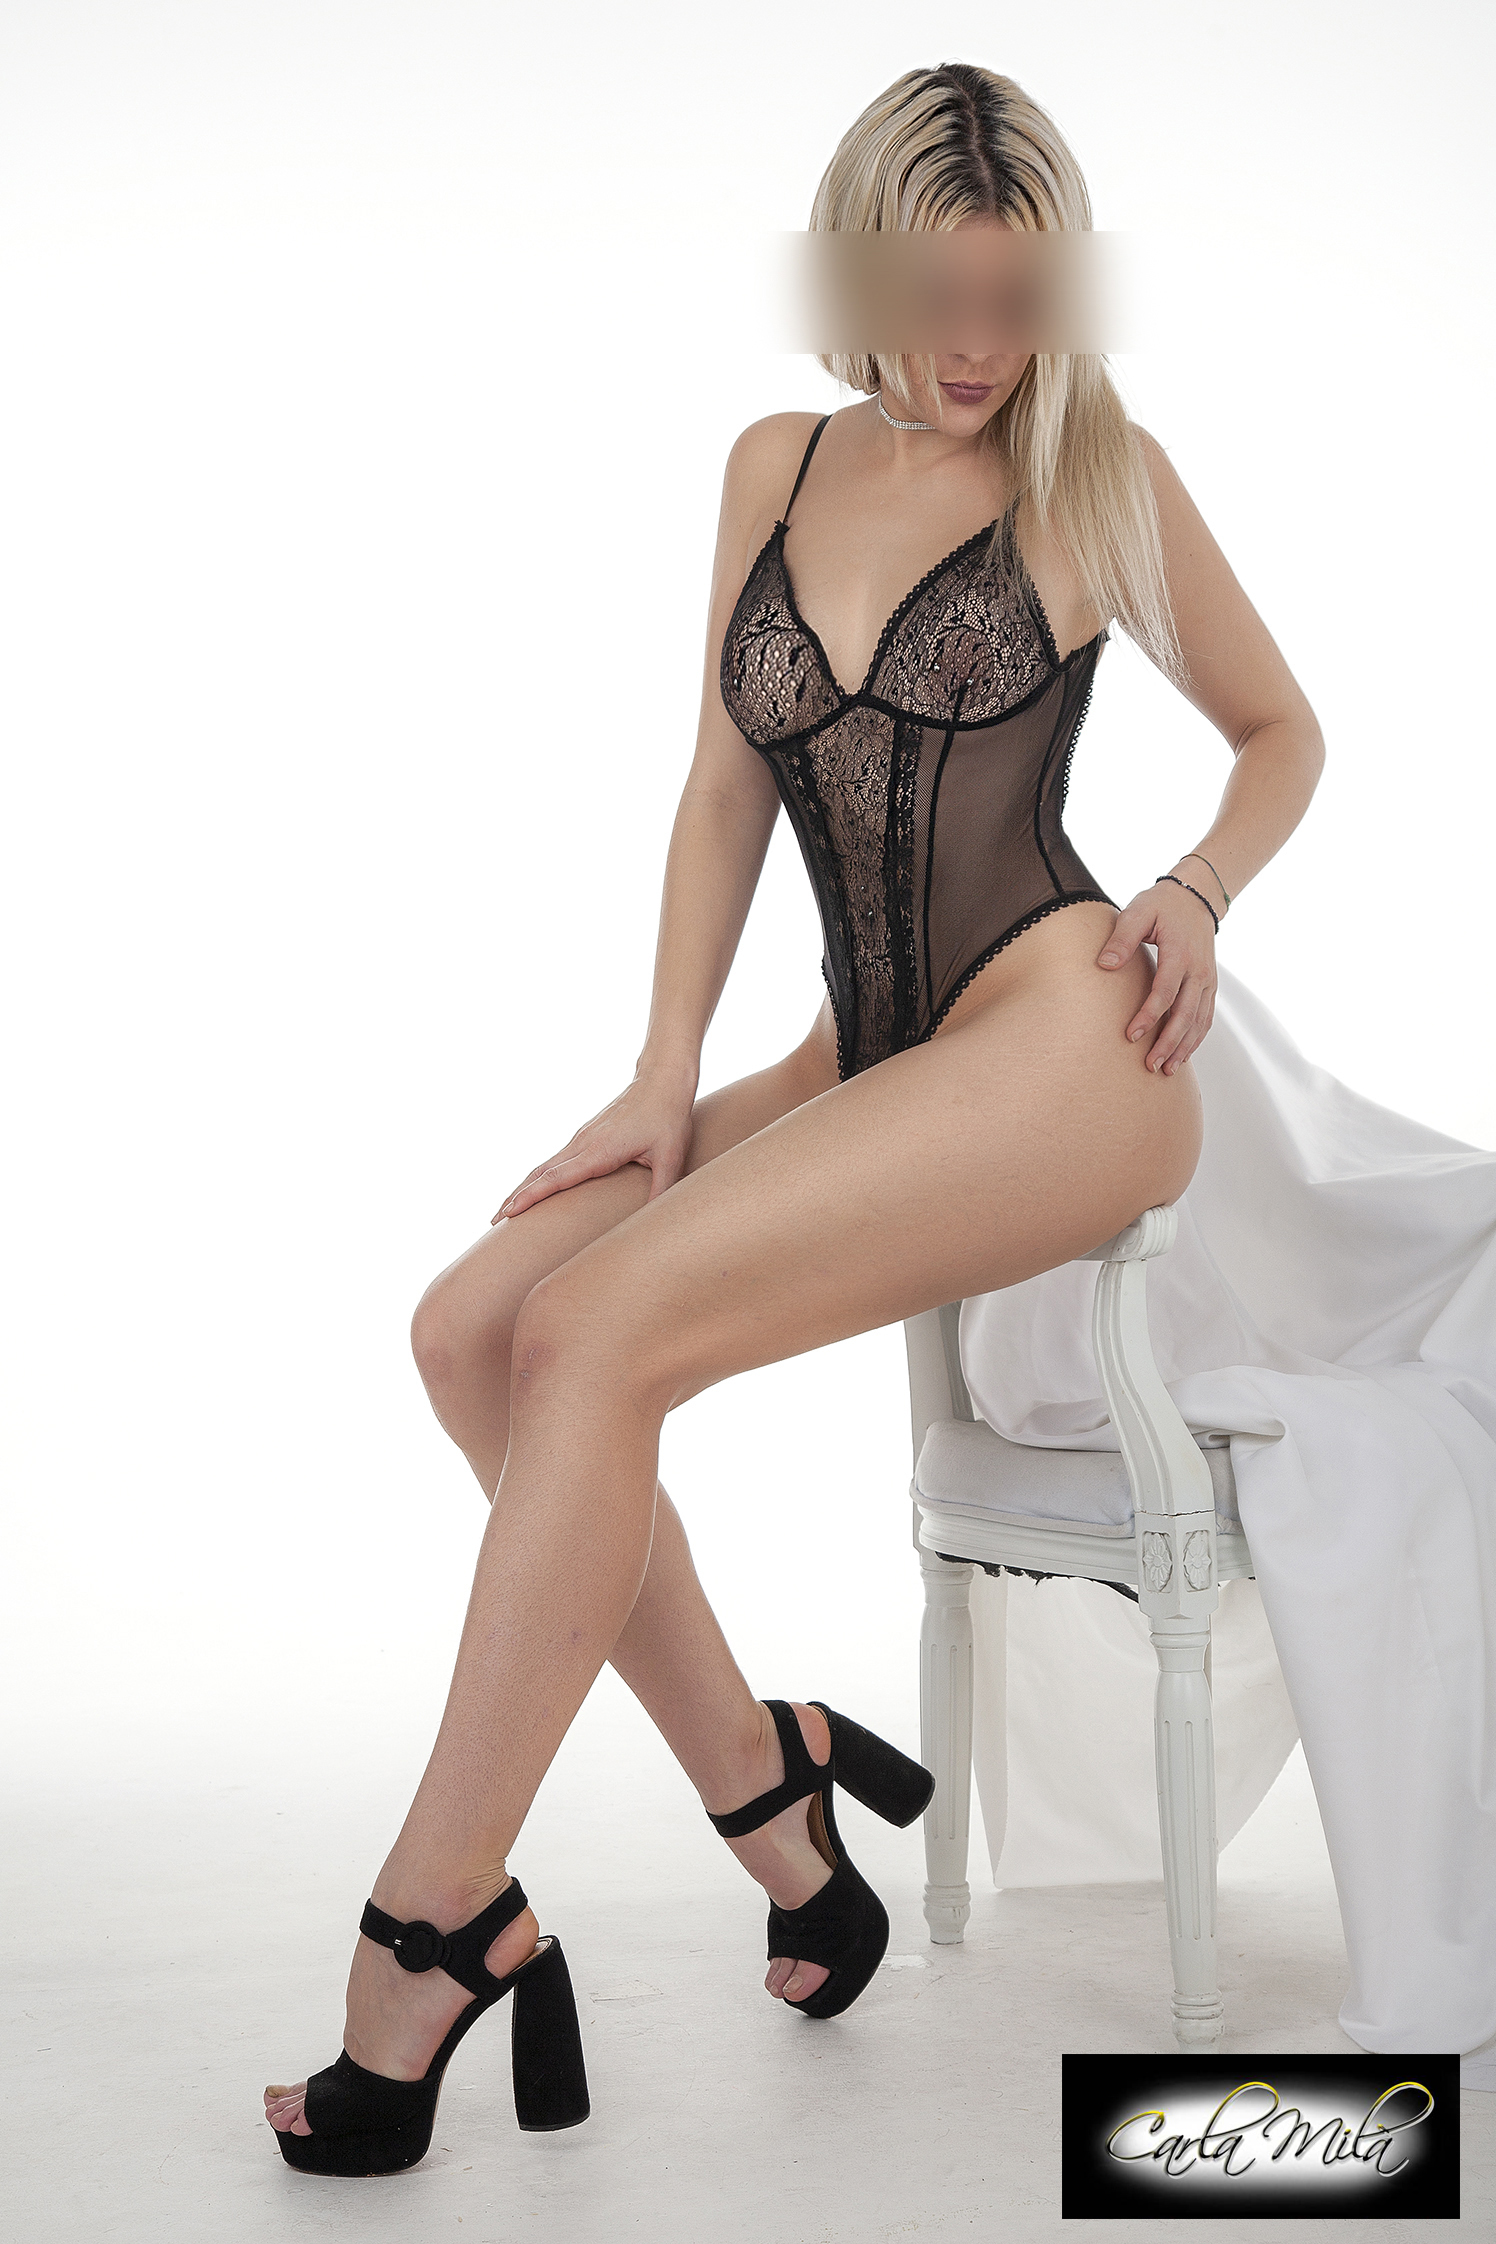 Ana. Escort Madrid